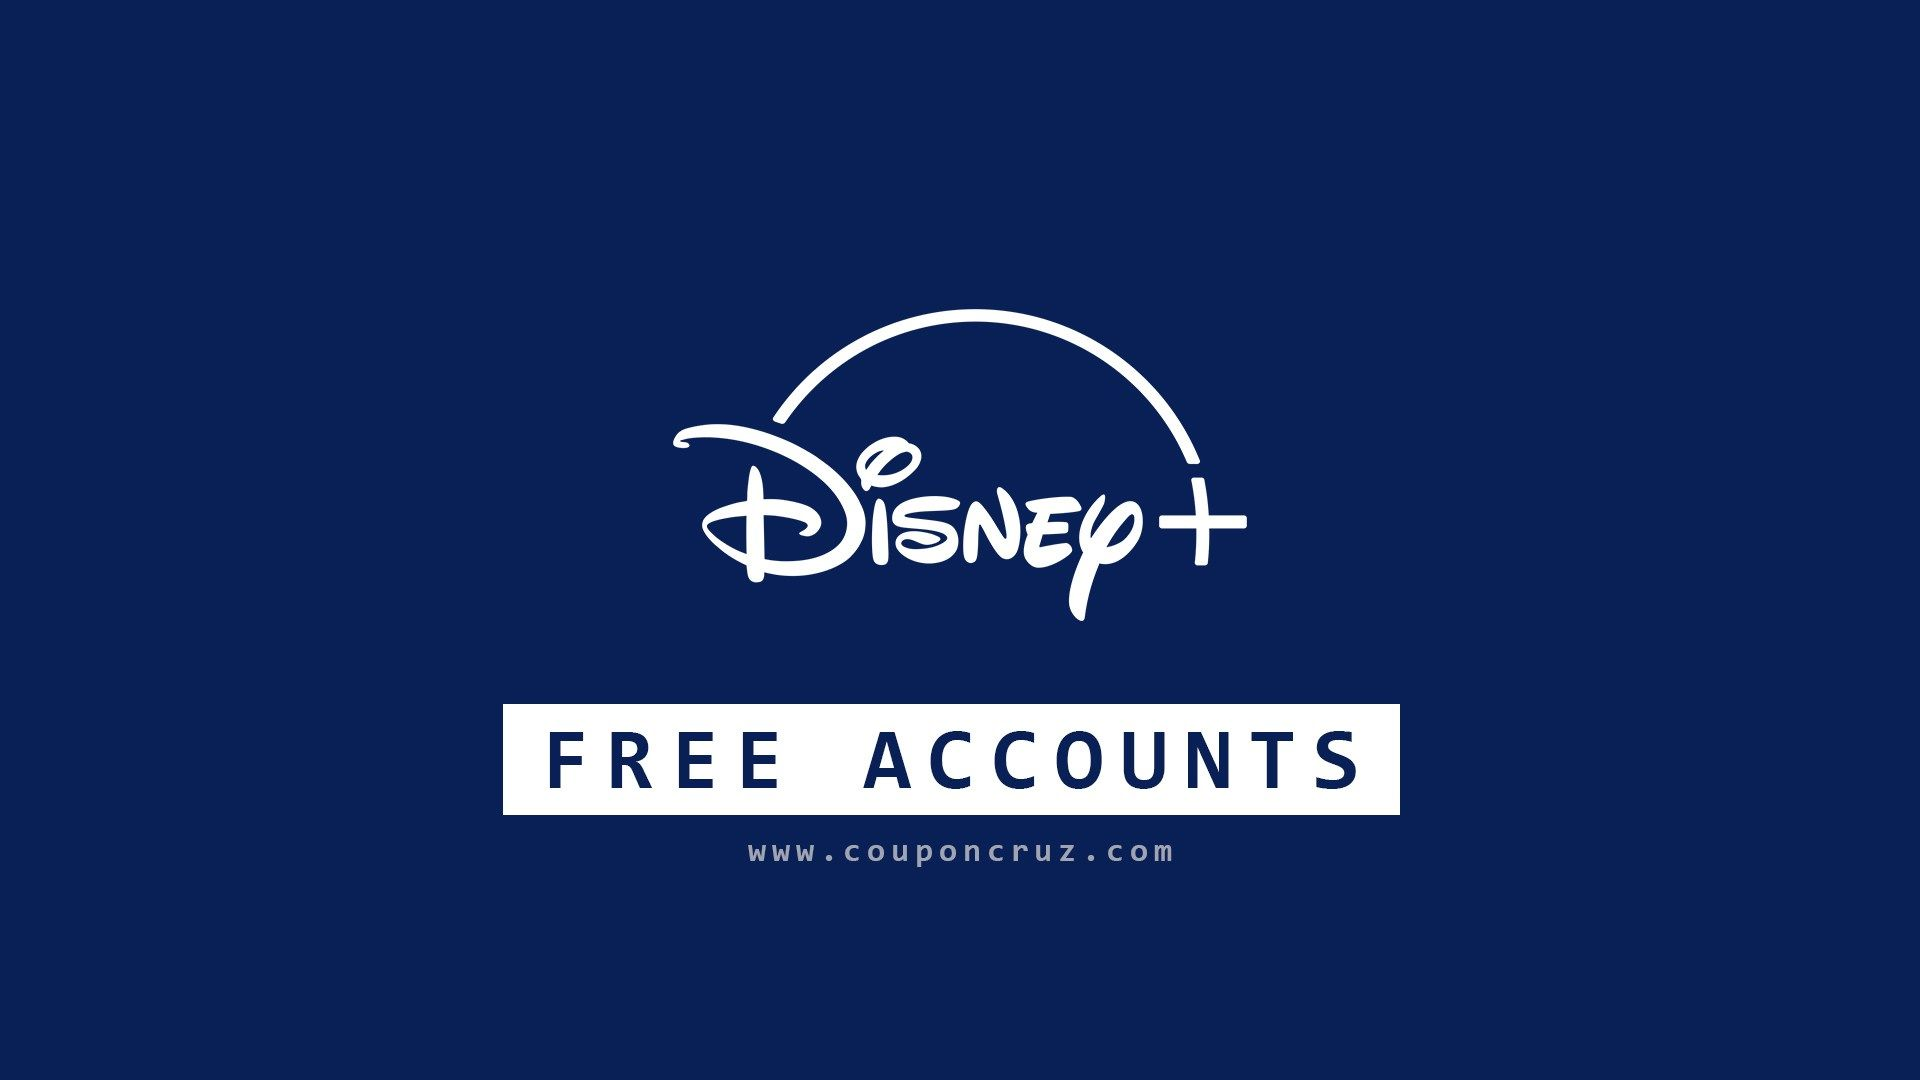 How to get free disney plus account in 2021 couponcruz